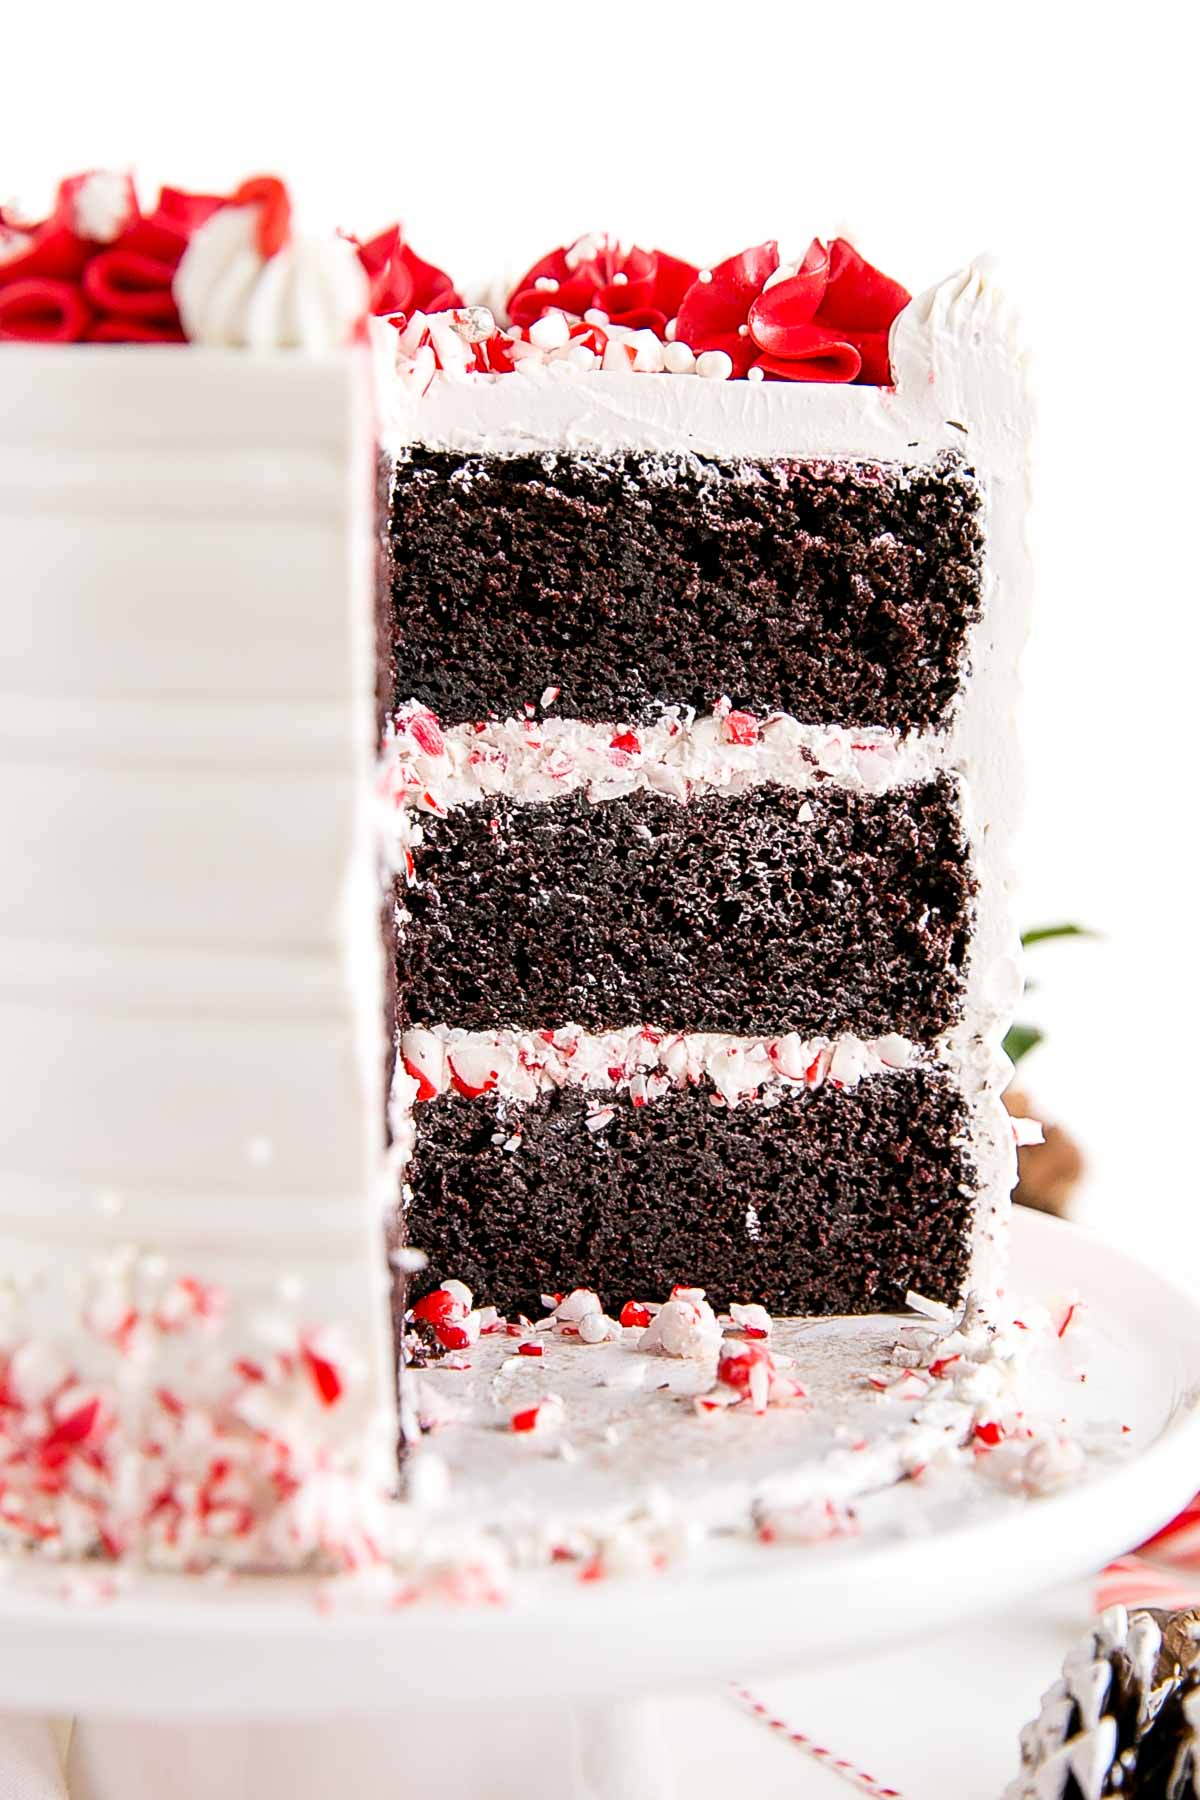 Cross-section showing the chocolate cake layers and crushed candy canes and frosting between them.